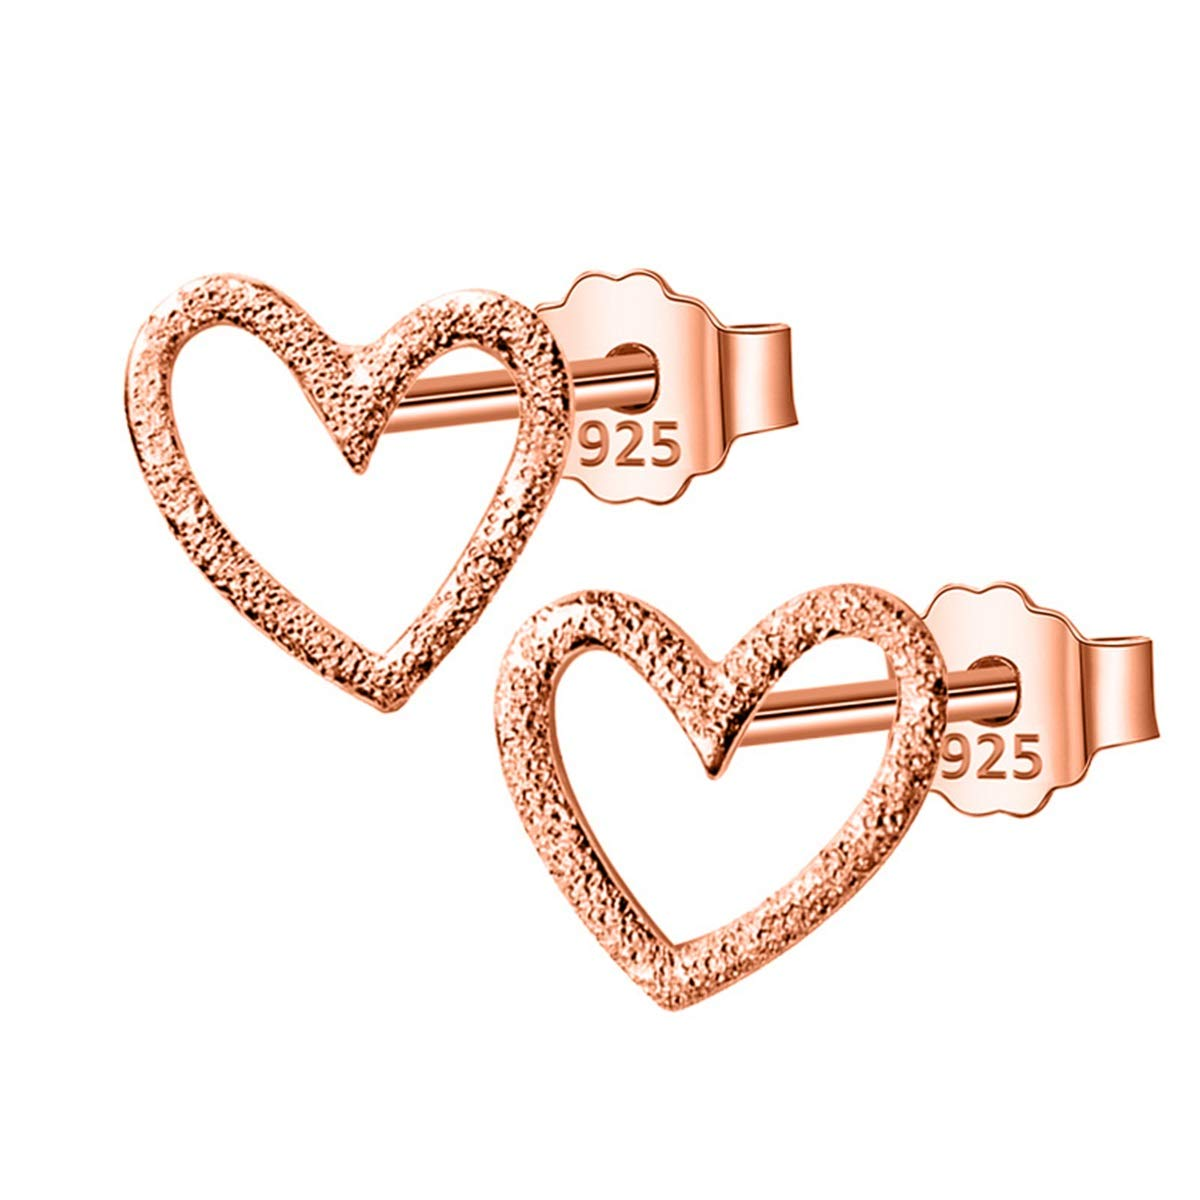 Liliynice 925 Sterling Silver Jewelry Women Fashion Cute Tiny 0.8Cmx0.9Cm Hollow Heart Stud Earrings Gift For Girls Kids Lady DS196 1Pair Rose